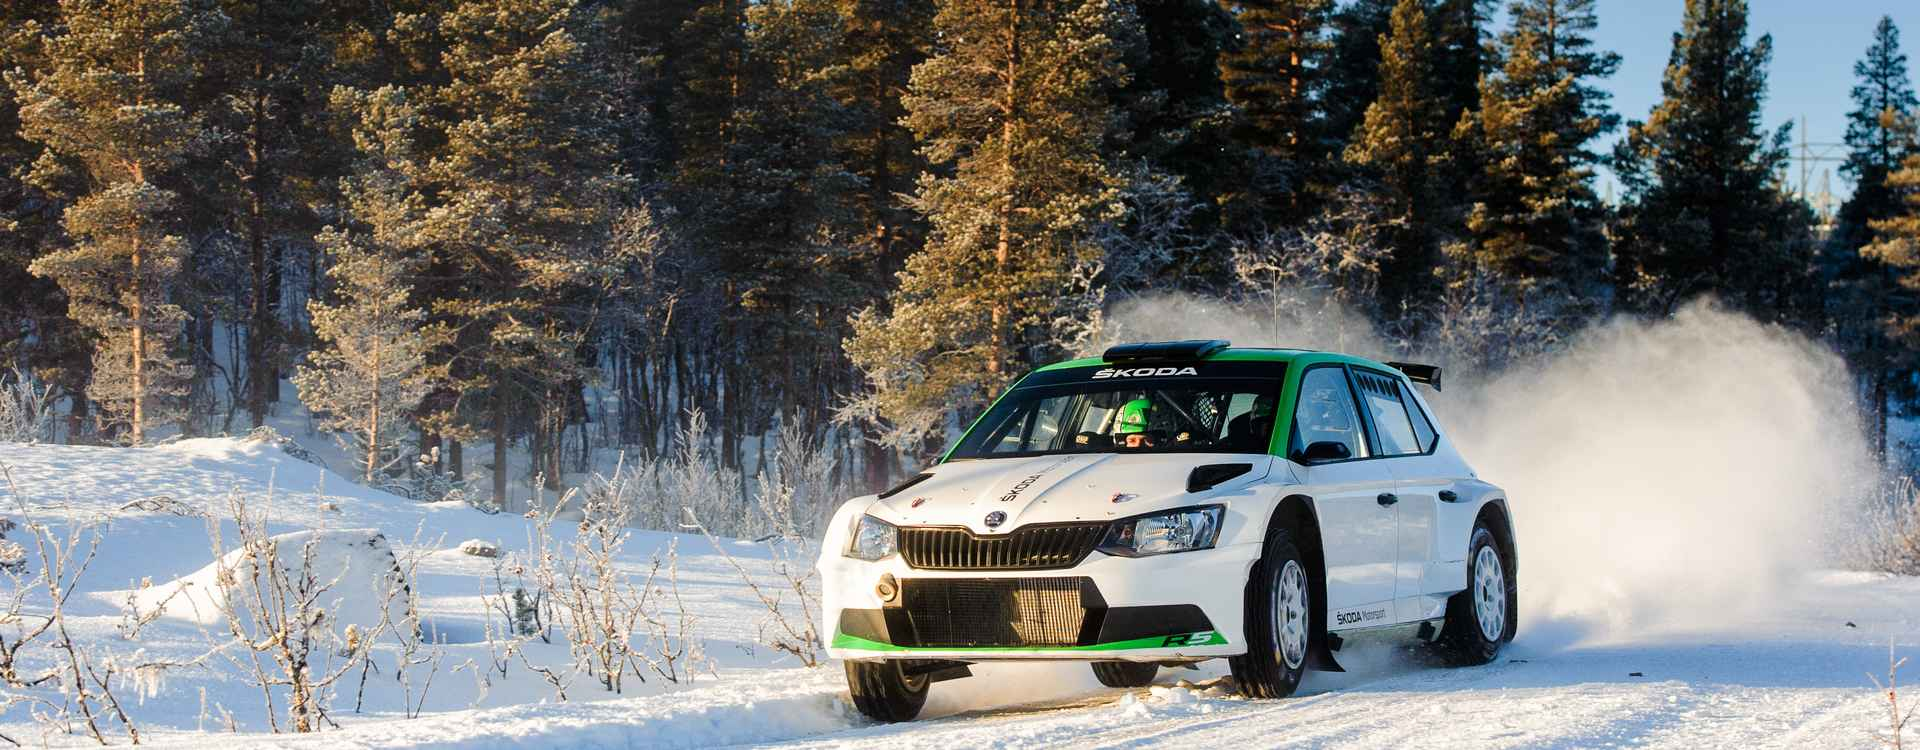 ŠKODA Motorsport returns to Swedish WRC round after 11-year absence